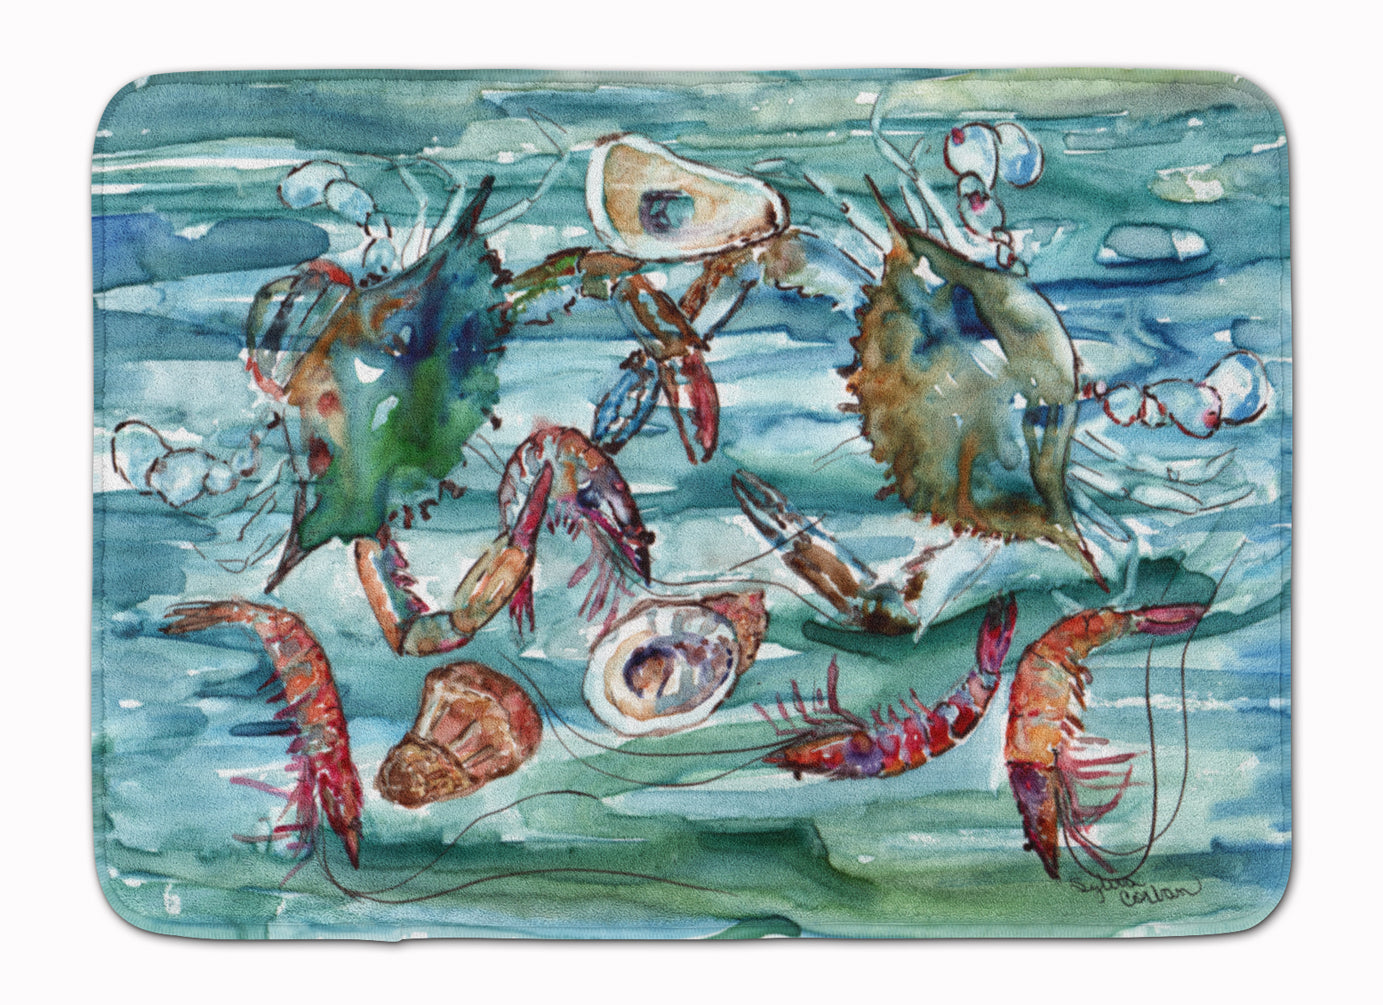 Crabs, Shrimp and Oysters in Water Machine Washable Memory Foam Mat 8944RUG by Caroline's Treasures